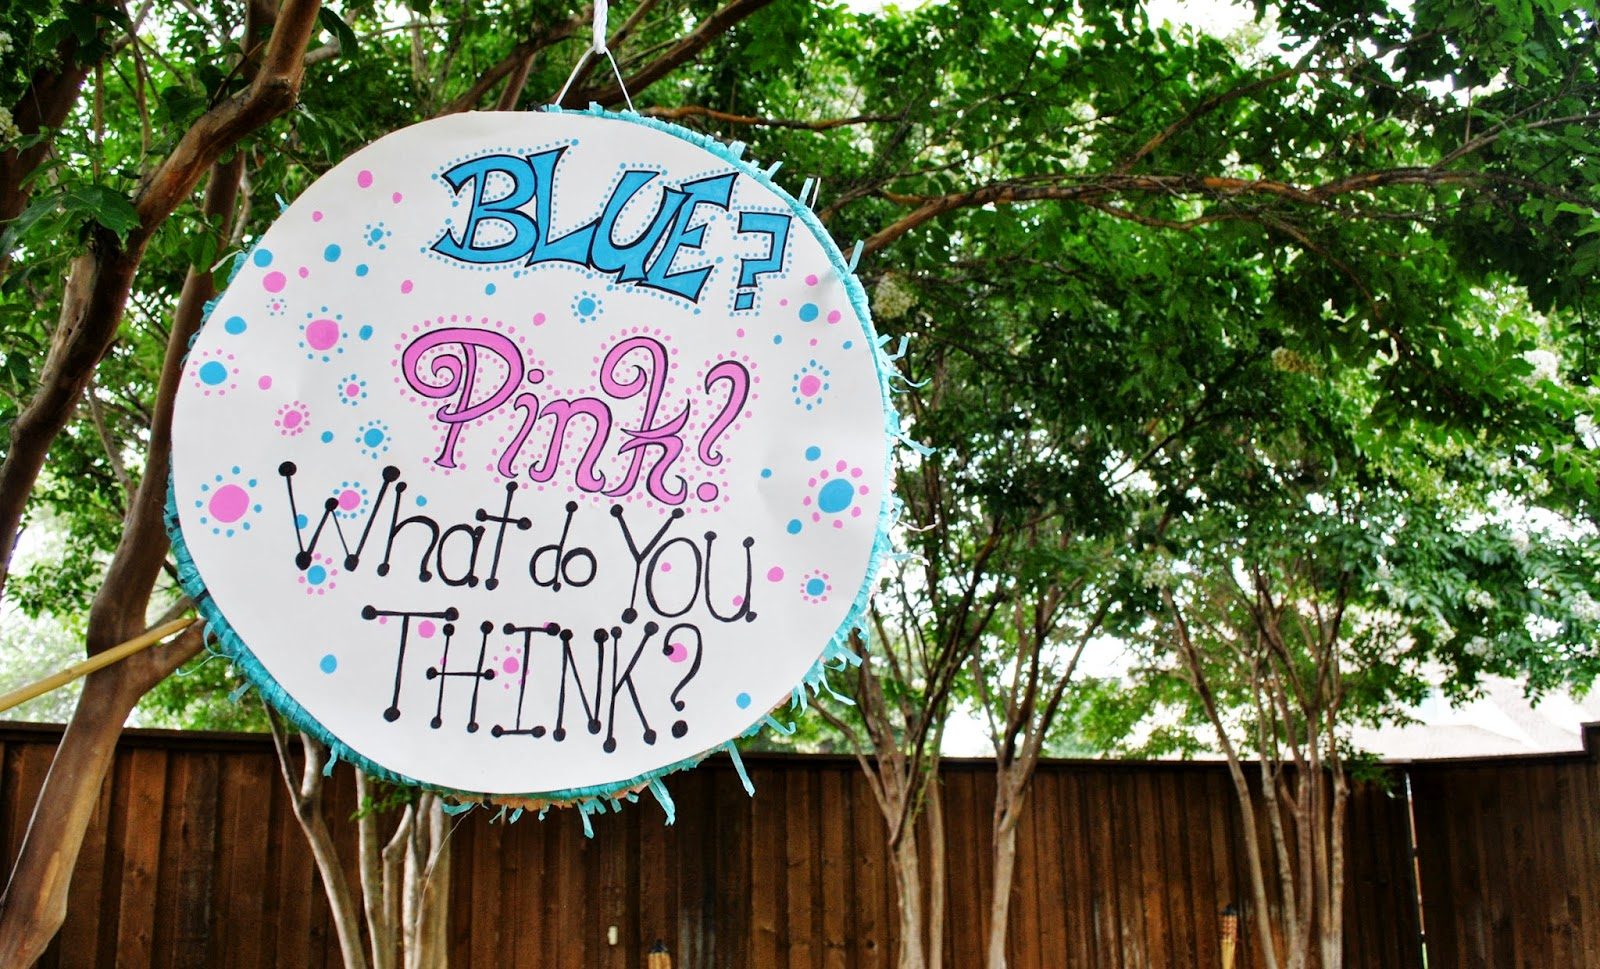 Boy Or Girl This New Gender Reveal Trend Is So Creative Baby Cans Rattle Stick Fortune Cookie